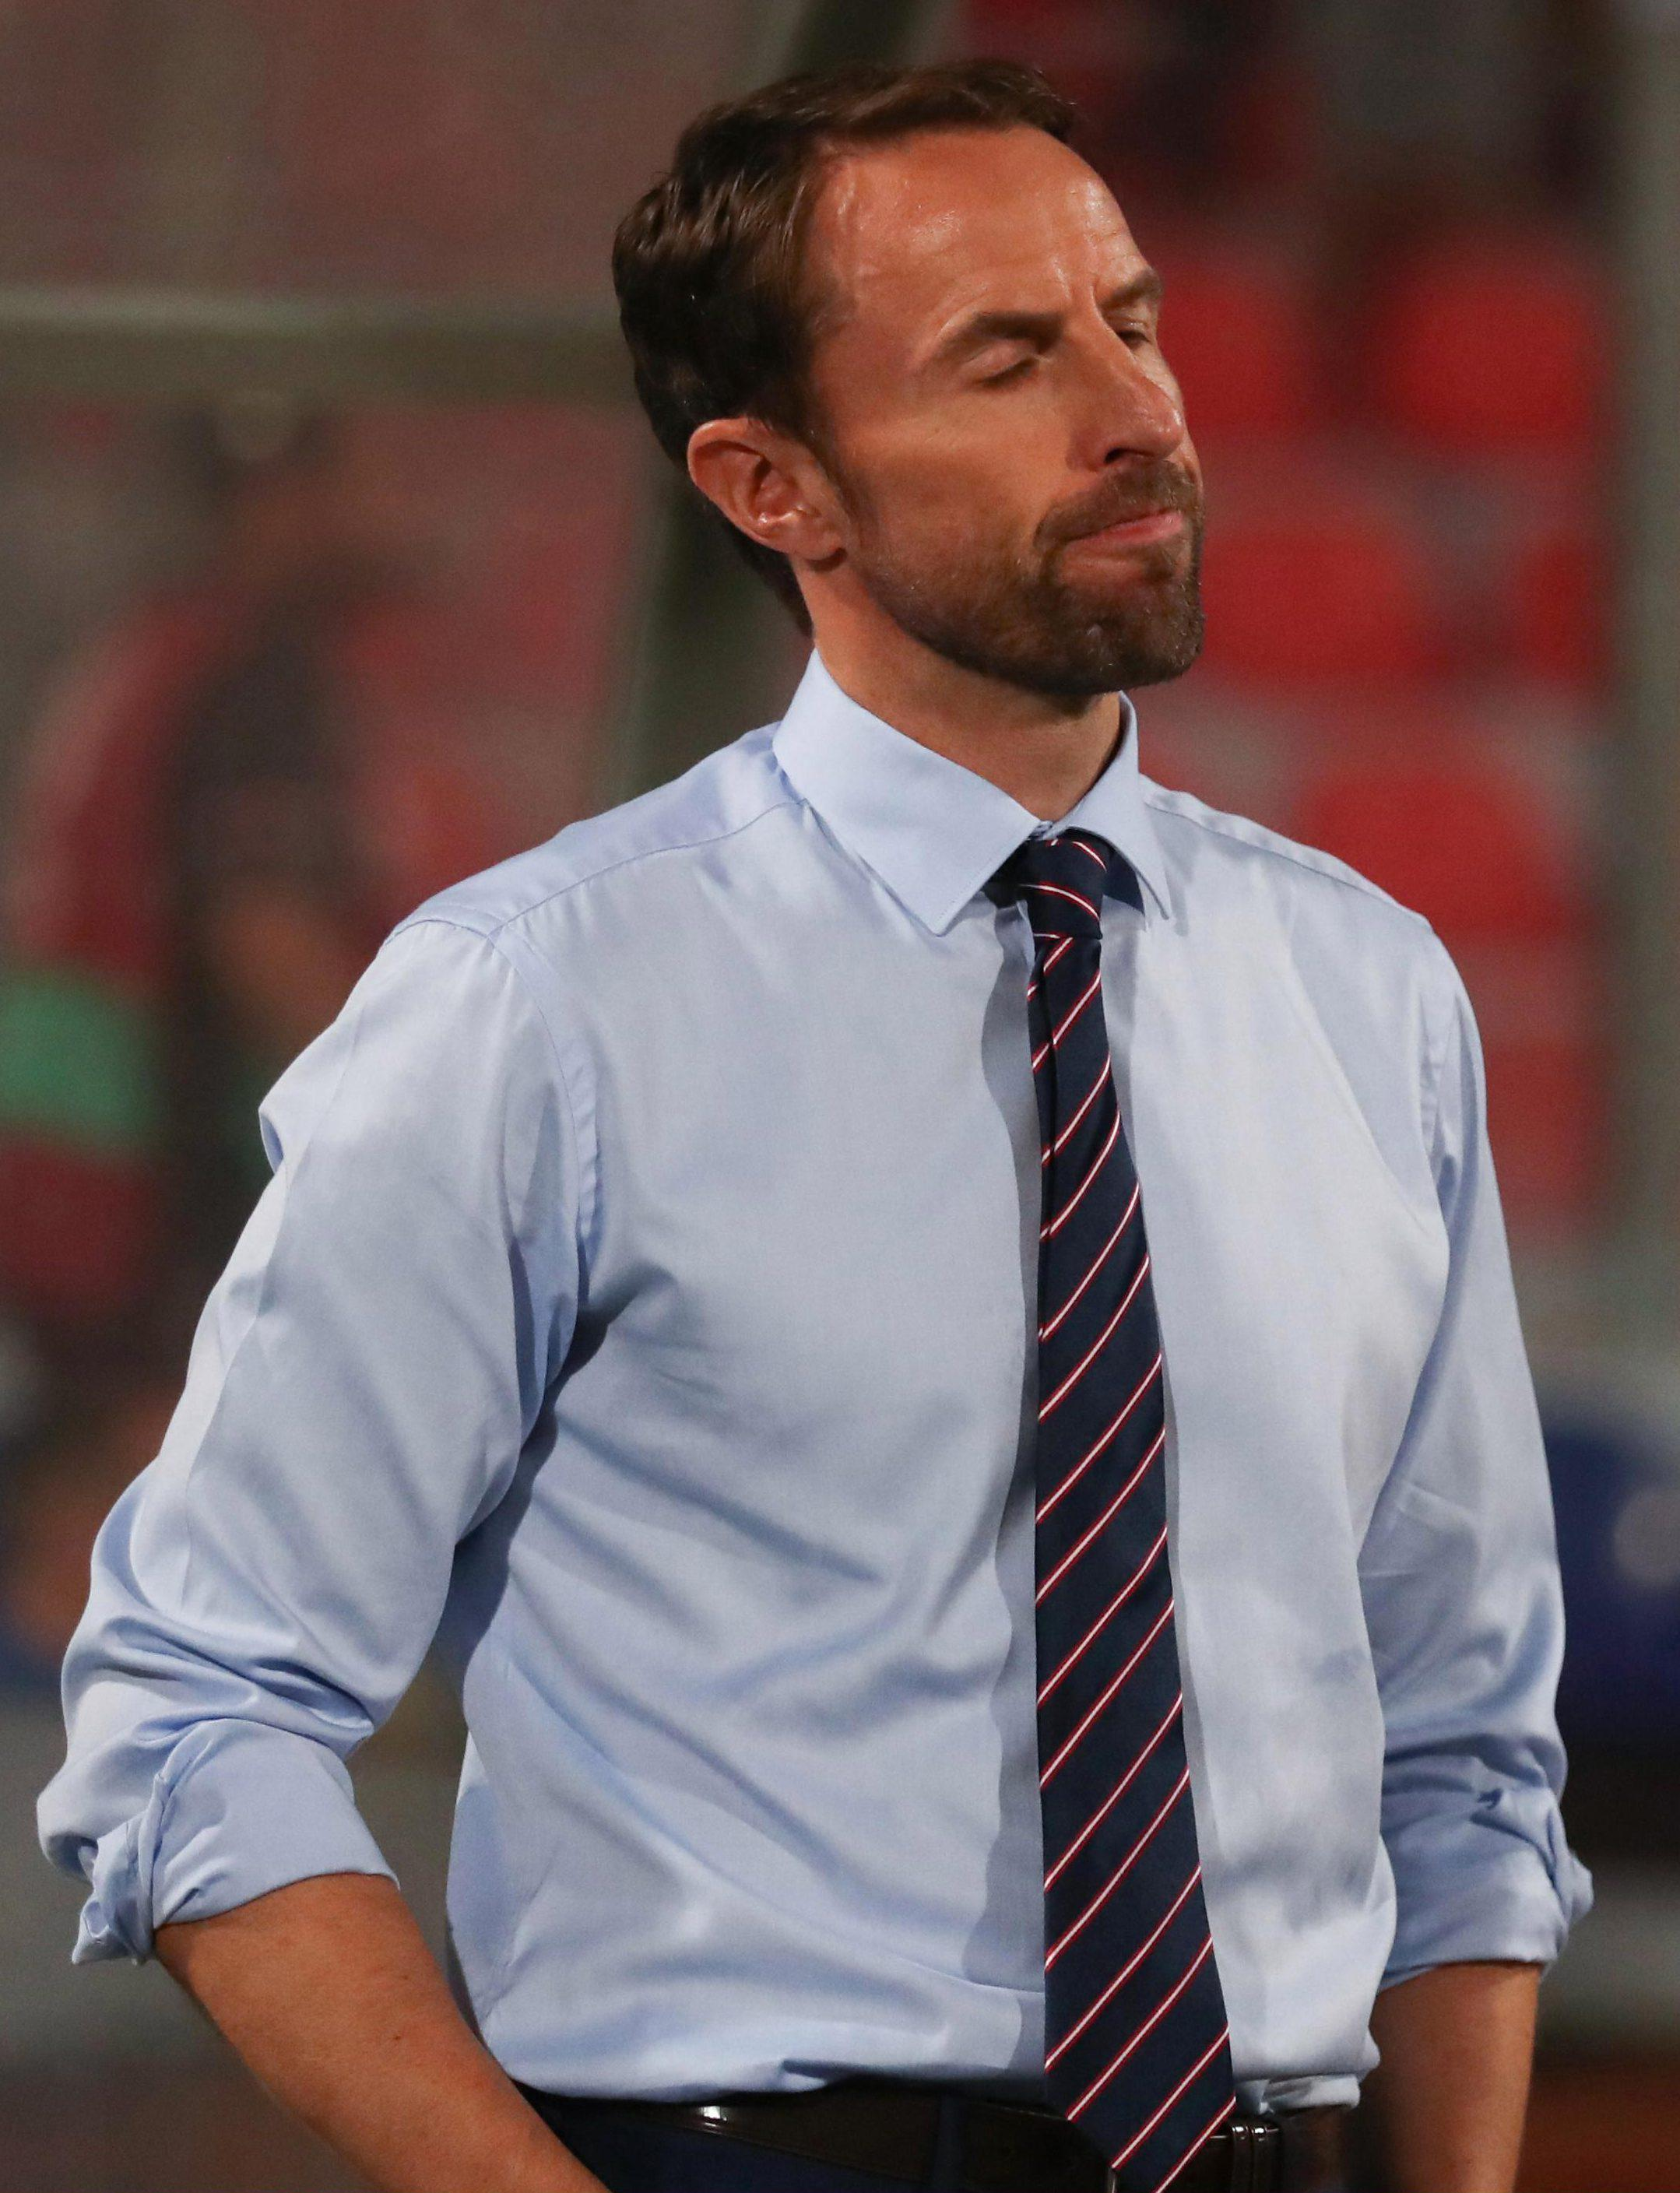 Current boss Gareth Southgate has his own painful memories of shootouts as a player